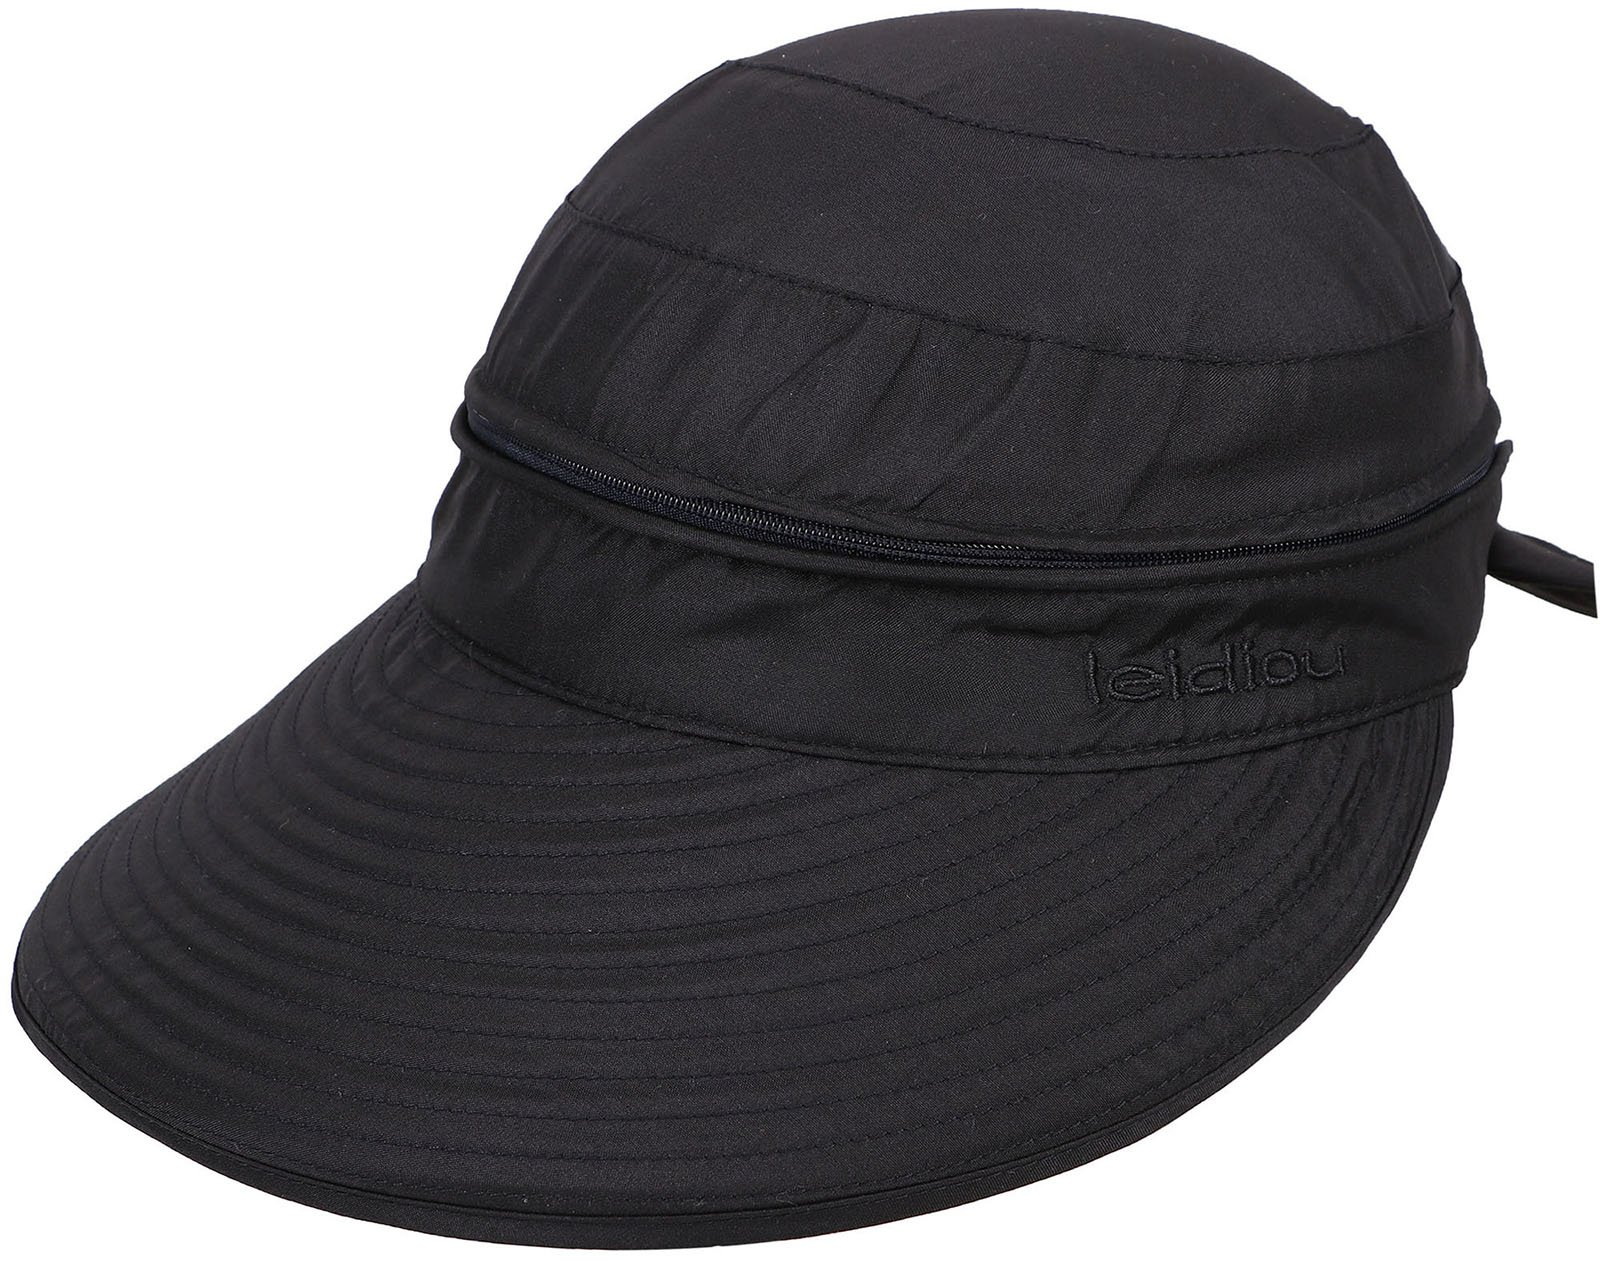 ca71bb35 Simplicity Women's UPF 50+ UV Sun Protective Convertible Beach Hat Visor  Black